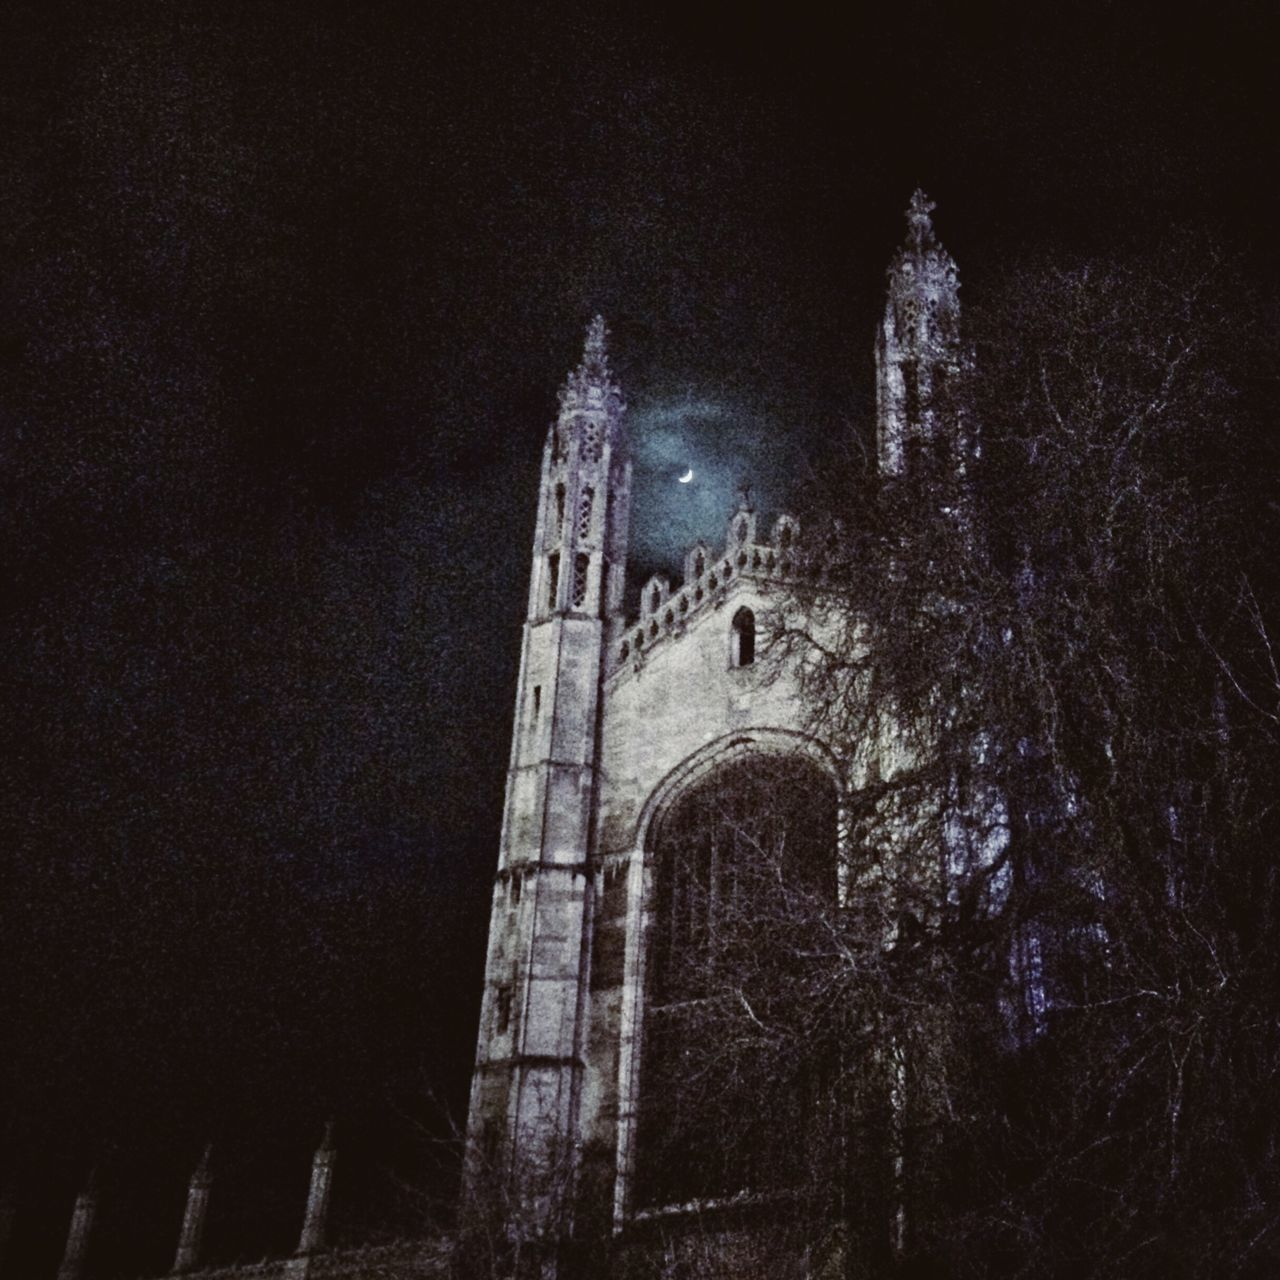 architecture, built structure, night, low angle view, building exterior, history, spirituality, place of worship, religion, travel destinations, no people, outdoors, old ruin, ancient civilization, illuminated, sky, bell tower